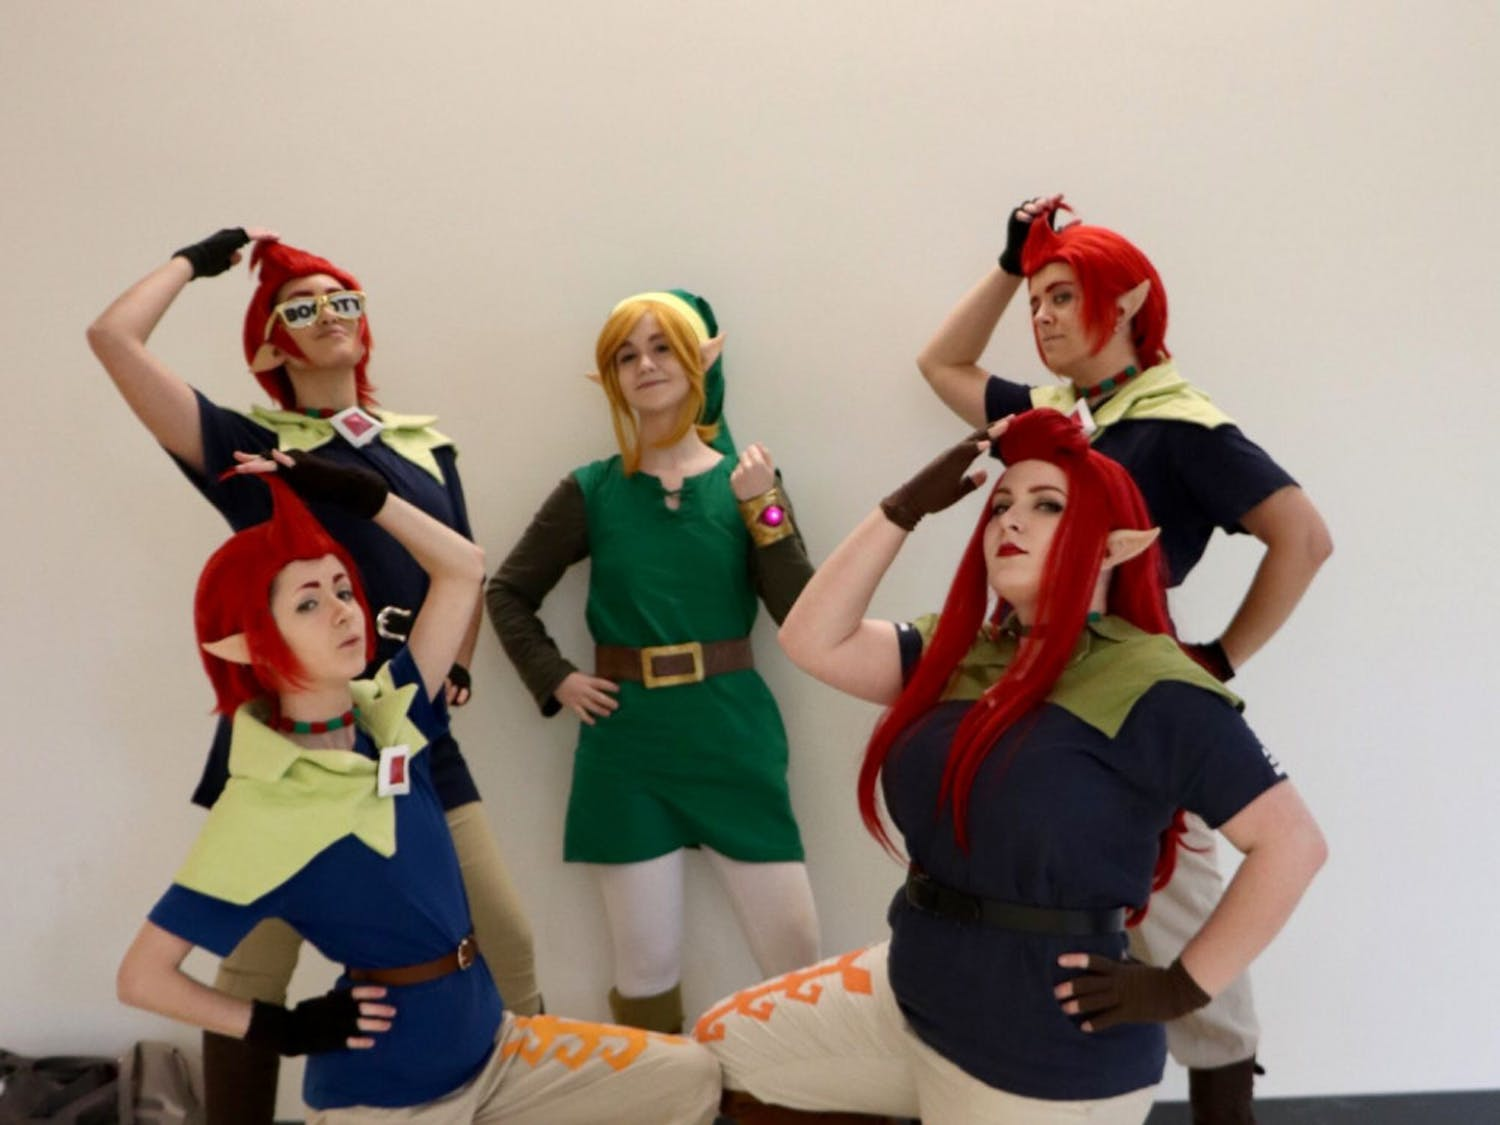 "Link and the Groose Flock Left to Right Names: Maddie Langguth, Kim Cruz, Katrina Lundquist , Keira McDonald and Kaitlin Duggan. The five planned this group cosplay a year in advance as an inside joke. Lundquist cosplays as Link, a character from ""The Legend of Zelda"" series, and the remaining four ladies dress up as Groose, who appears in ""The Legend of Zelda: Skyward Sword."" According to Duggan, the group spent three hours working on their costumes in their hotel room. They have attended multiple conventions as Link and the Groose Flock. ""It's nice we're a joke cosplay every once in a while,"" said Duggan. The group advises first-time cosplayers to have fun and to plan ahead. ""Start early,"" said McDonald. ""Do not 'con crunch' and don't start your cosplay in three hours possibly in a hotel room."""